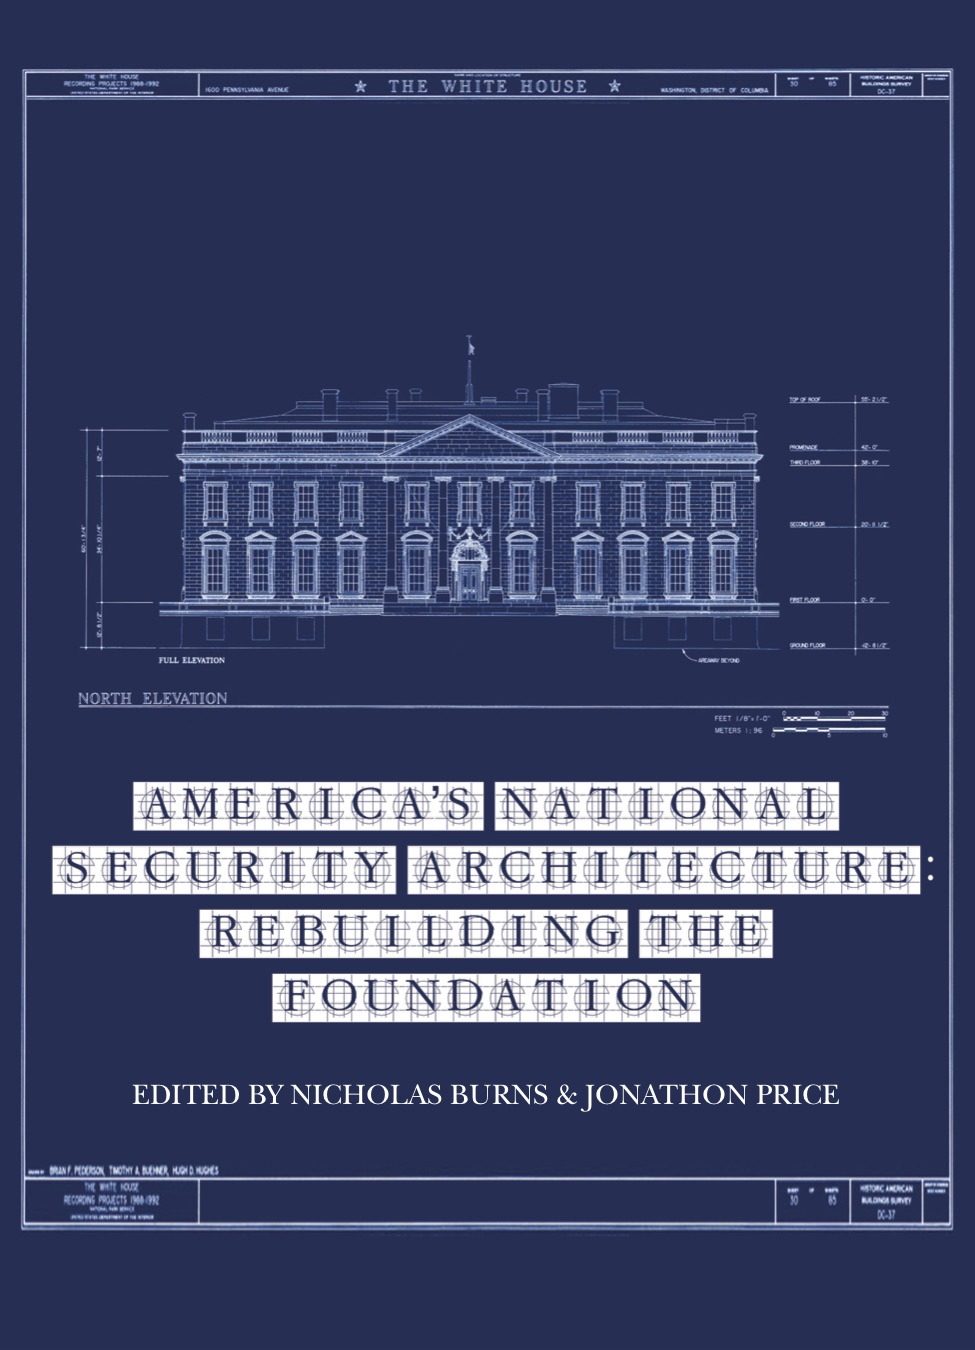 America's National Security Architecture - In August 2016, the Aspen Strategy Group examined how to reform America's national security decision-making process. The papers in this volume provide practical solutions to repair the key functions of Washington's executive departments, agencies, and advisory bodies responsible for shaping U.S. foreign policy and national security.Contributors include Nicholas Burns, Joseph S. Nye, Jr., Douglas Stuart, Graham Allison, Niall Ferguson, John Sawers, Leah Joy Zell, Zoë Baird, Christopher Kirchhoff, Julianne Smith, Stephen Hadley, Tom Pritzker, James B. Steinberg, Jane Holl Lute, James Cartwright, Dov S. Zakheim, Robert D. Blackwill, Jennifer M. Harris, John Dowdy, Kirk Rieckhoff, and Peter Feaver.Published: January 10, 2017